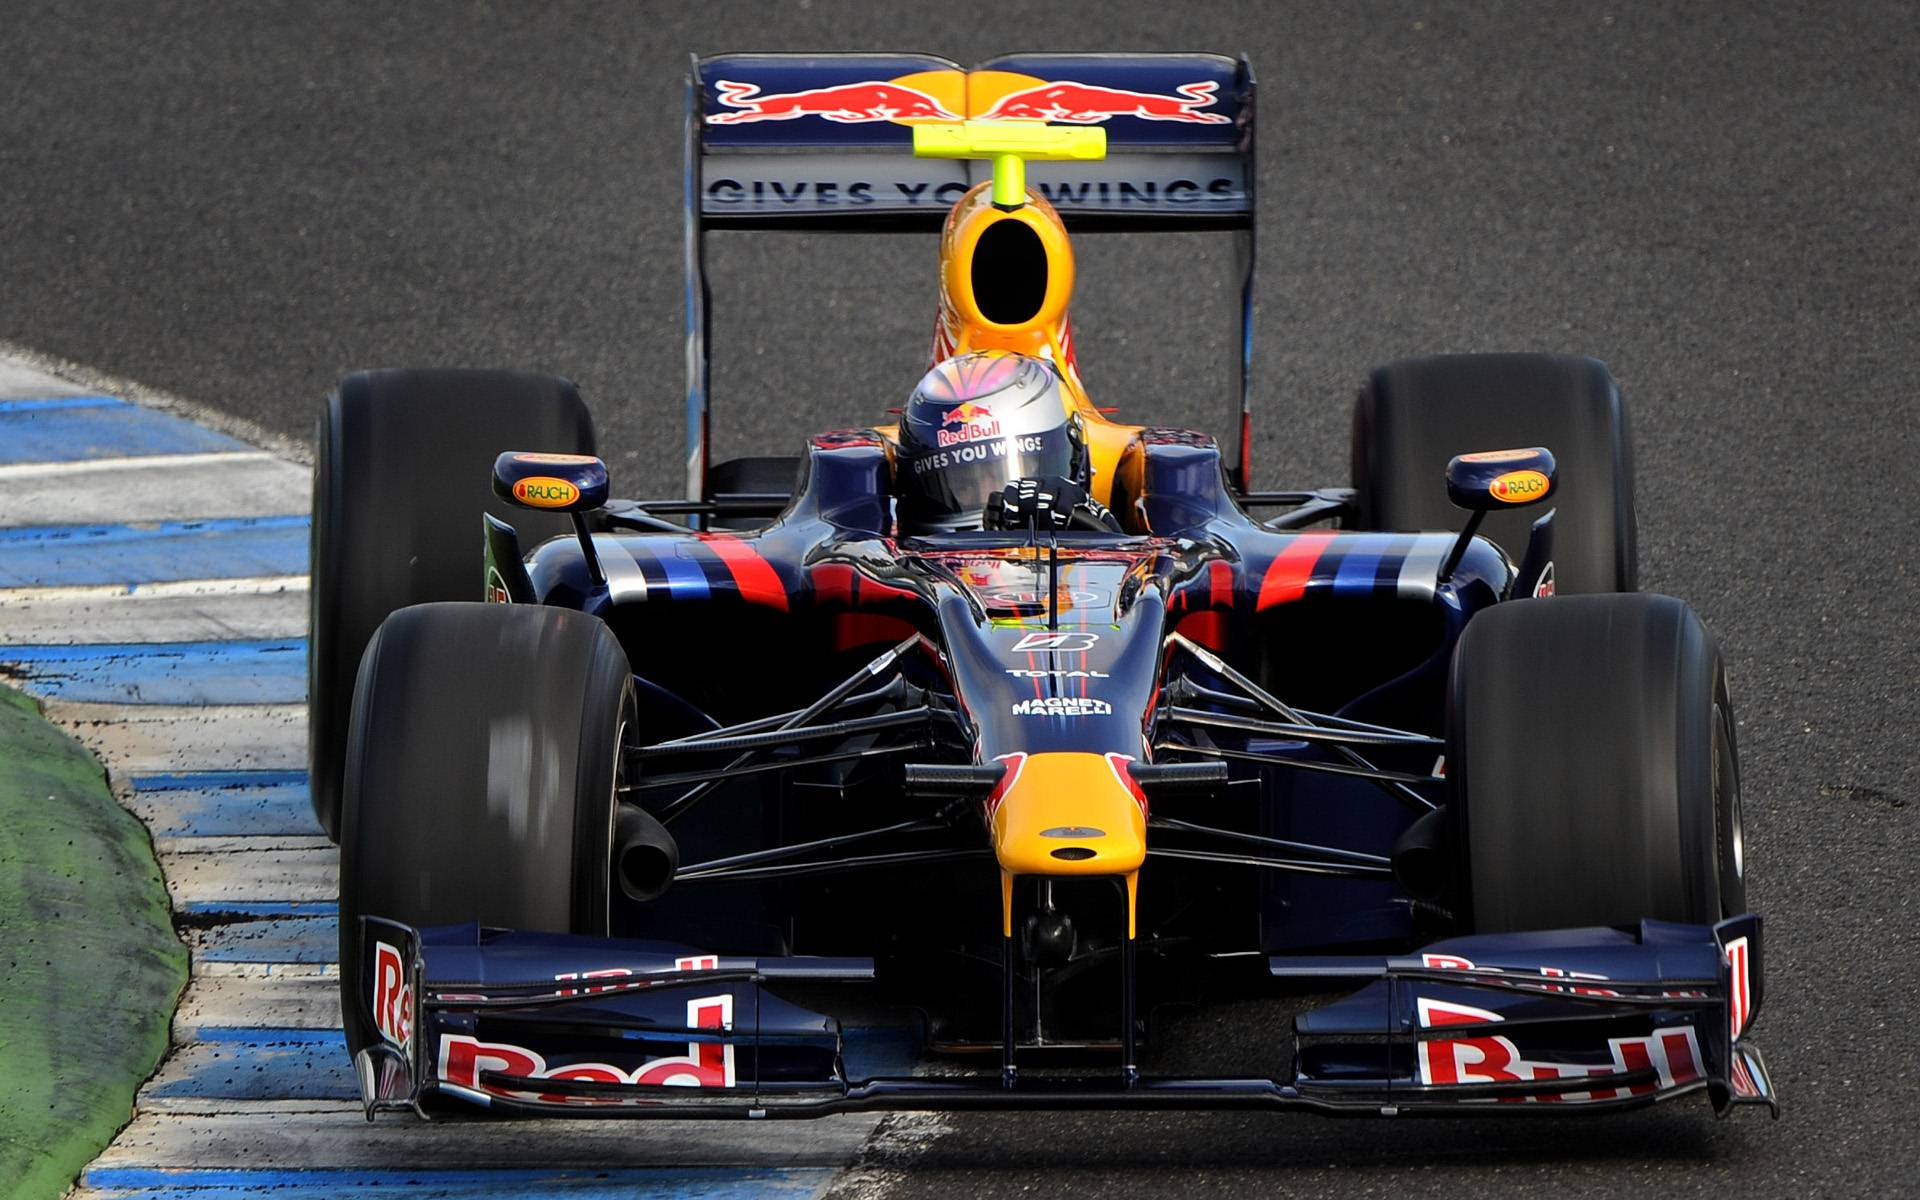 Red bull rb5 photo - 10